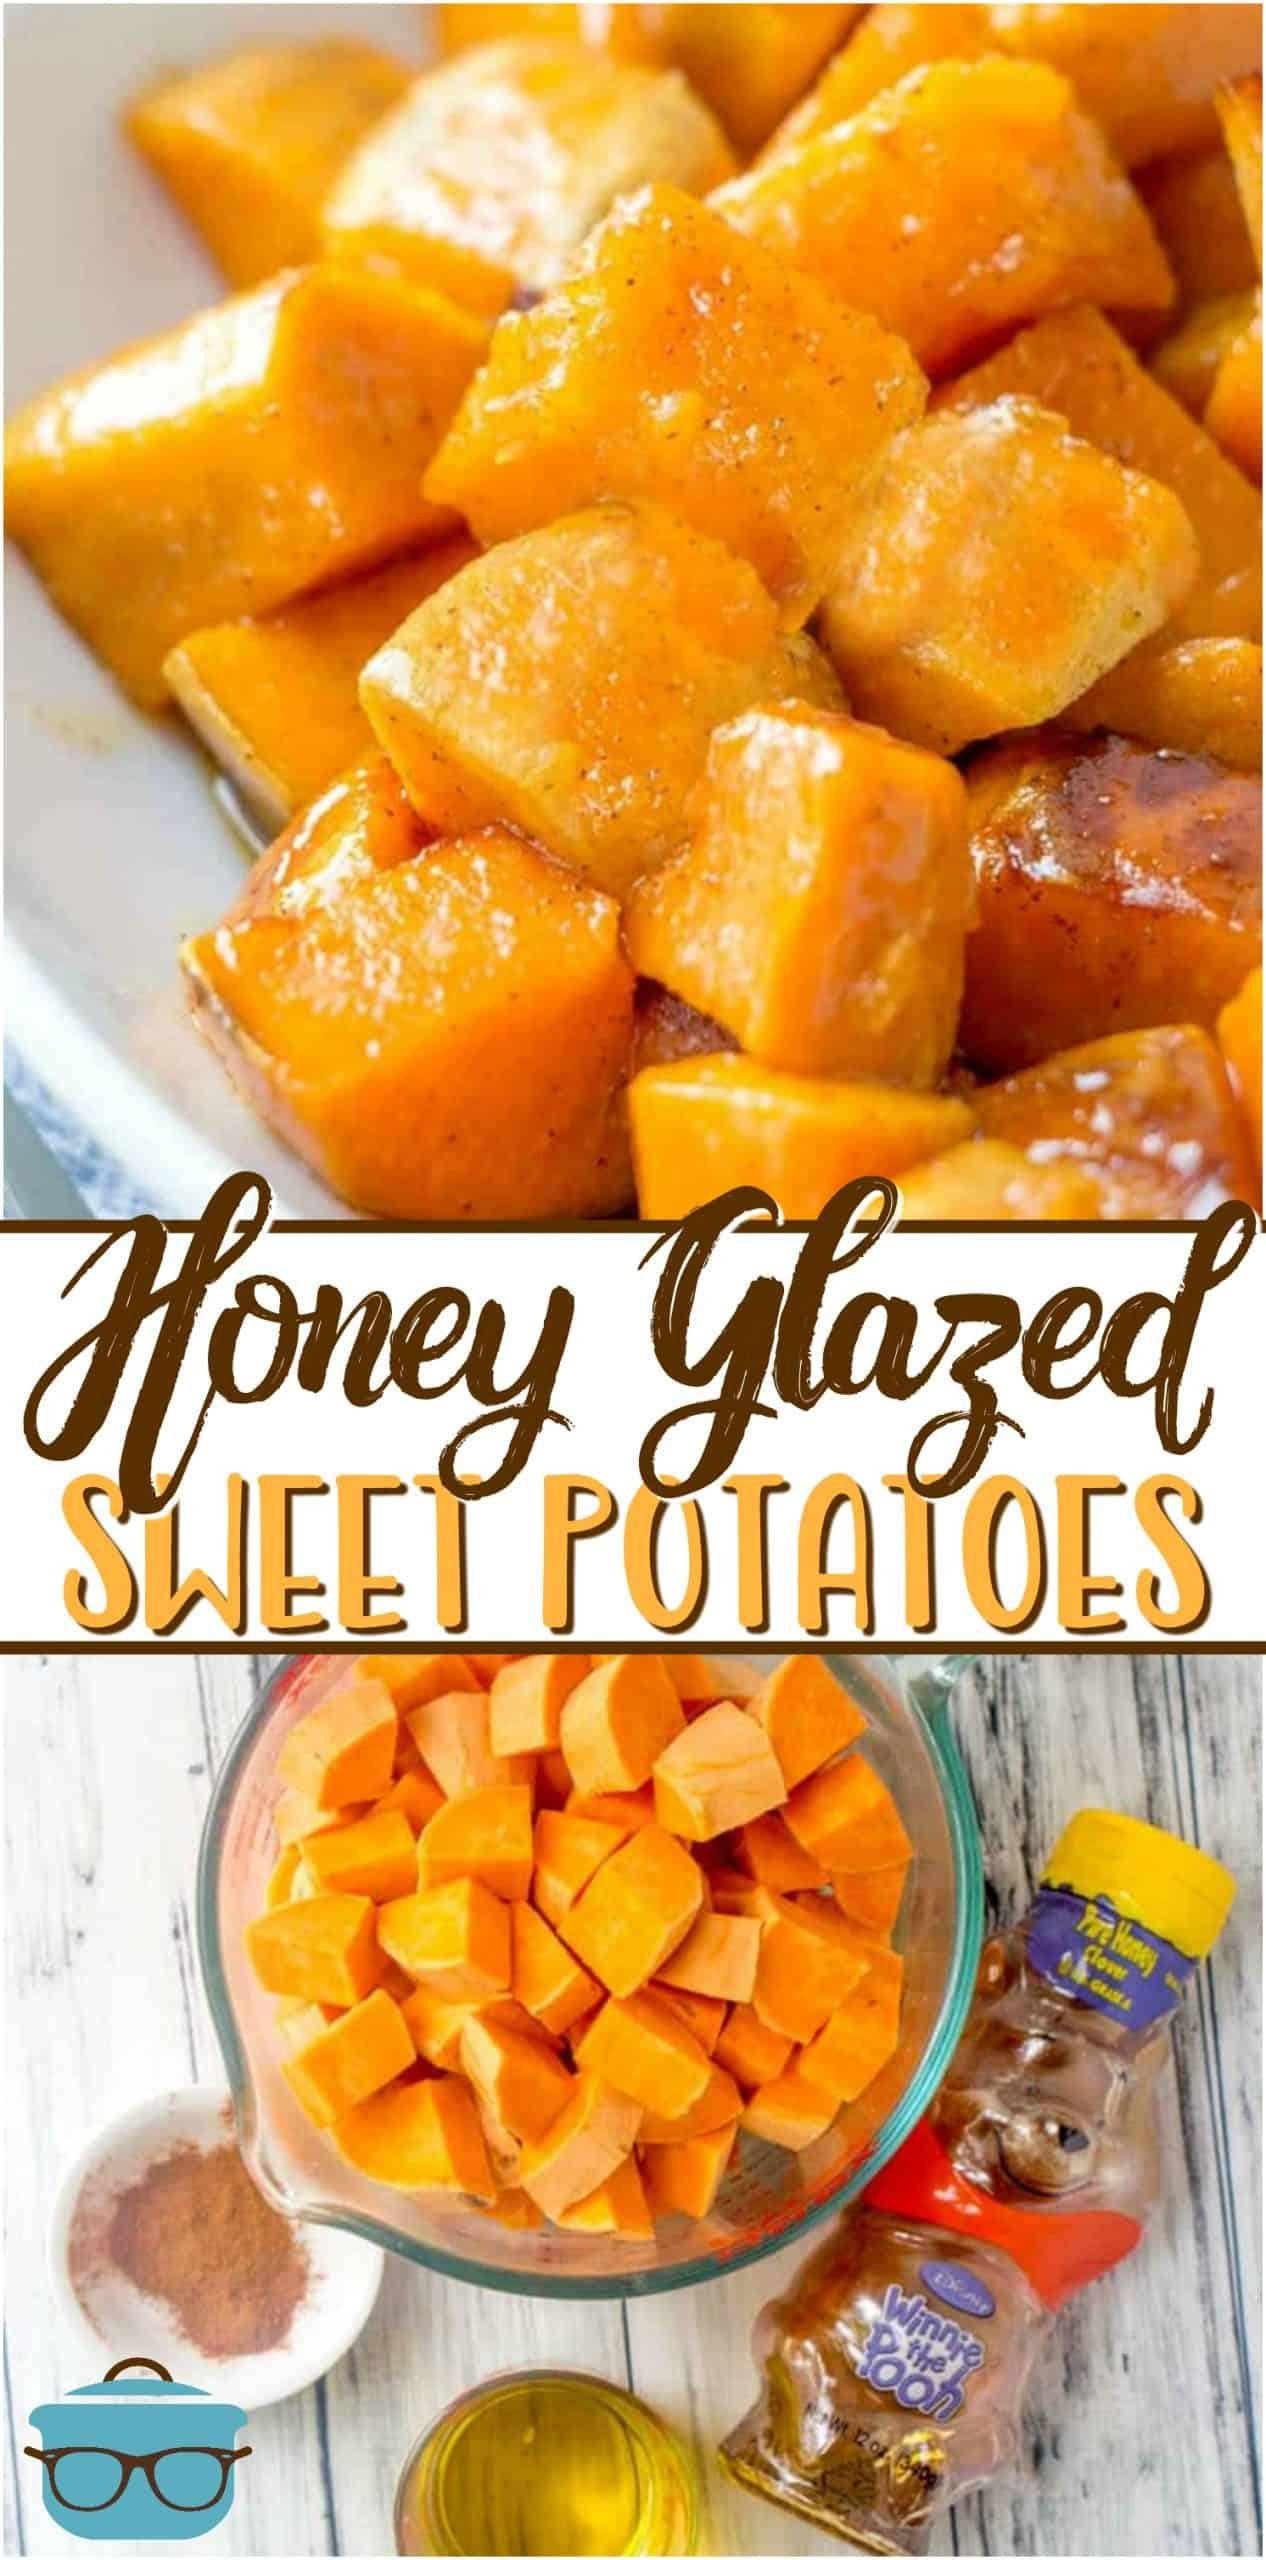 Only four ingredients are needed to make these deliciously easy Honey Glazed Sweet Potatoes! It's all made in minutes on the stovetop!